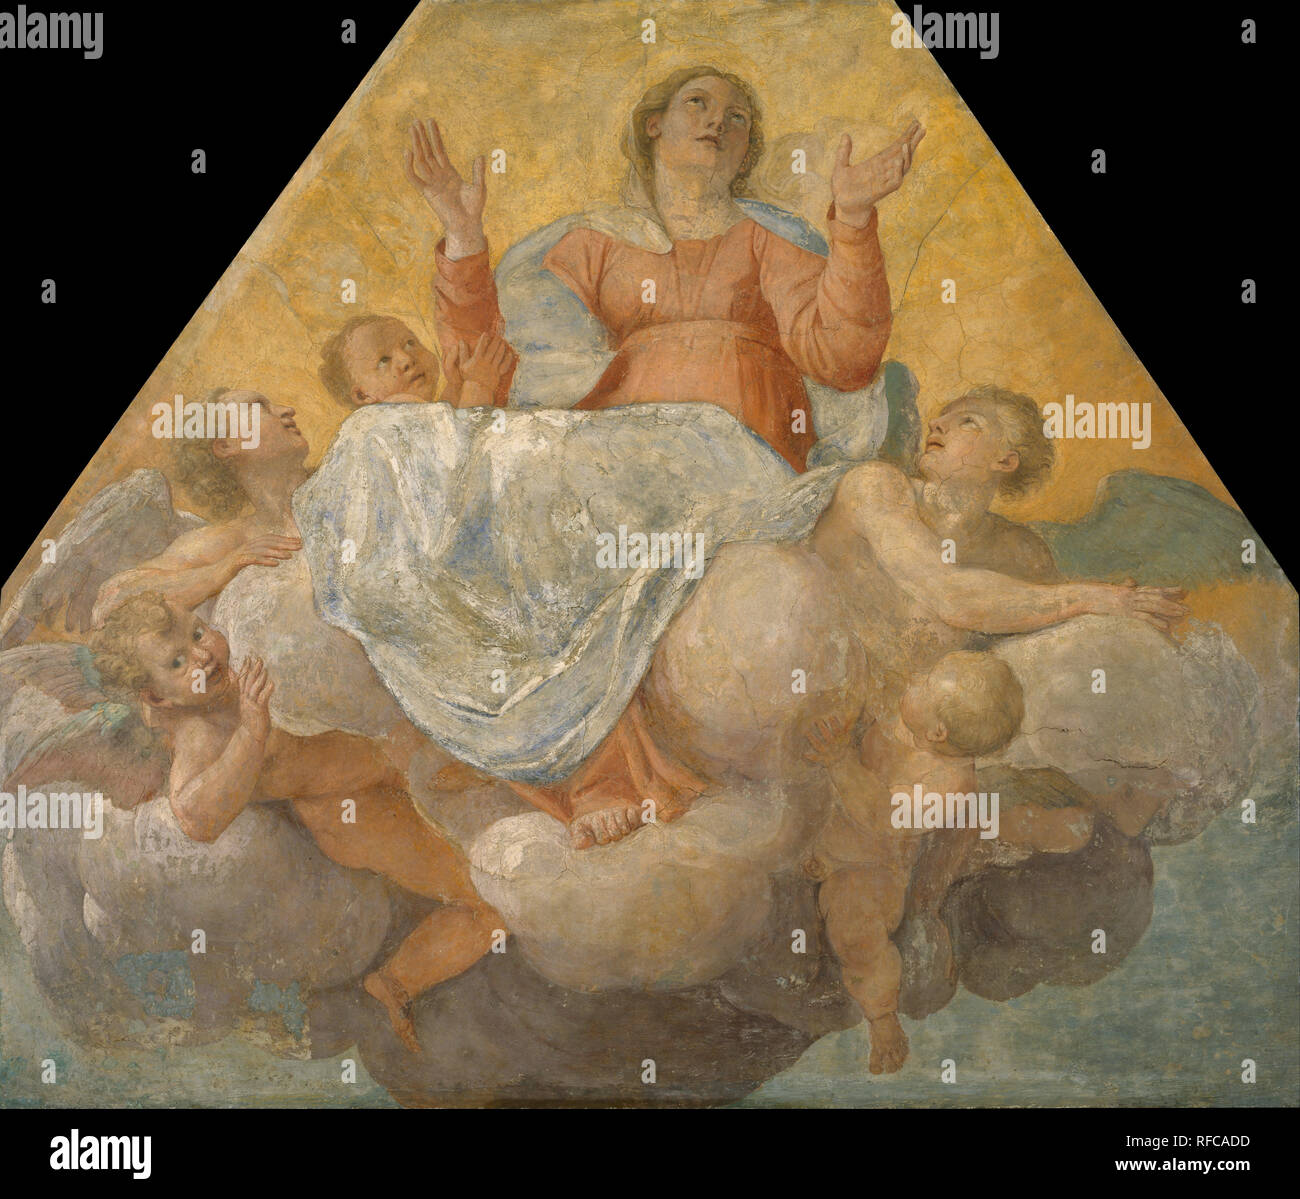 Assumption of the Virgin. Date/Period: End of 1604 - beginning of 1605. Mural painting. Fresco transferred to canvas. Height: 2,080 mm (81.88 in); Width: 2,430 mm (95.66 in). Author: Annibale Carracci. CARRACCI, ANNIBALE. - Stock Image